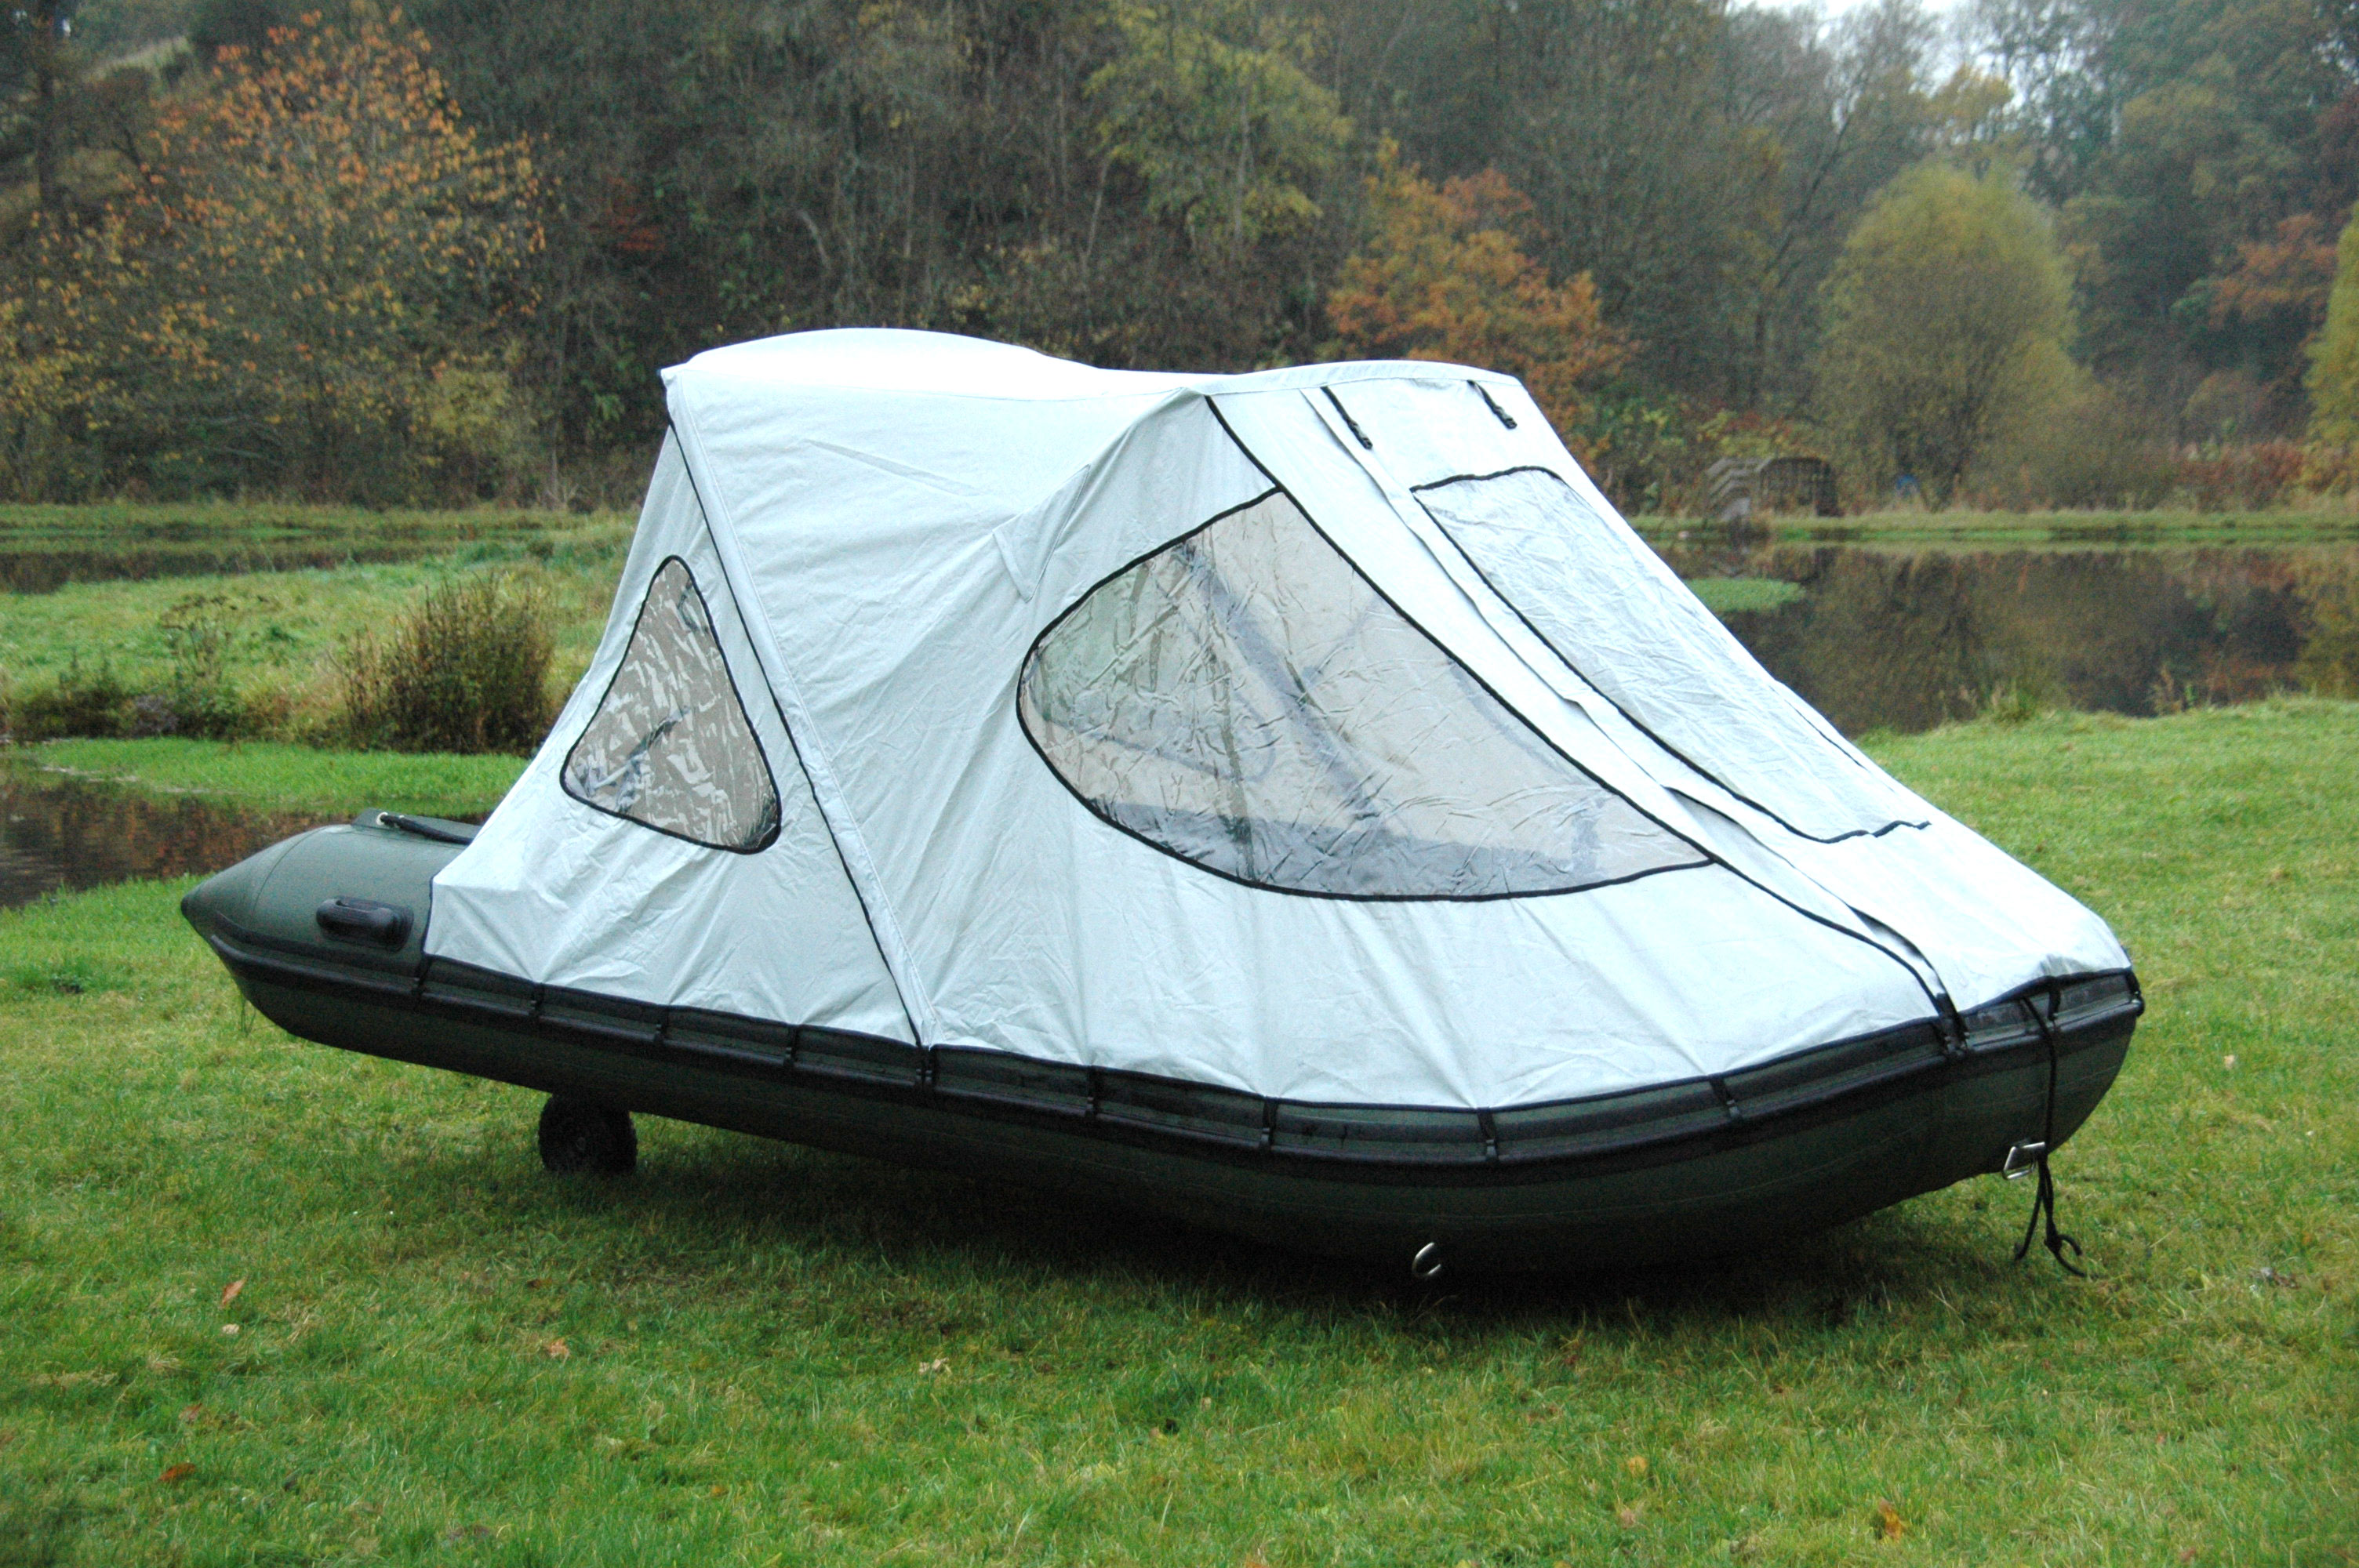 bison marine bimini cockpit tent canopy for inflatable